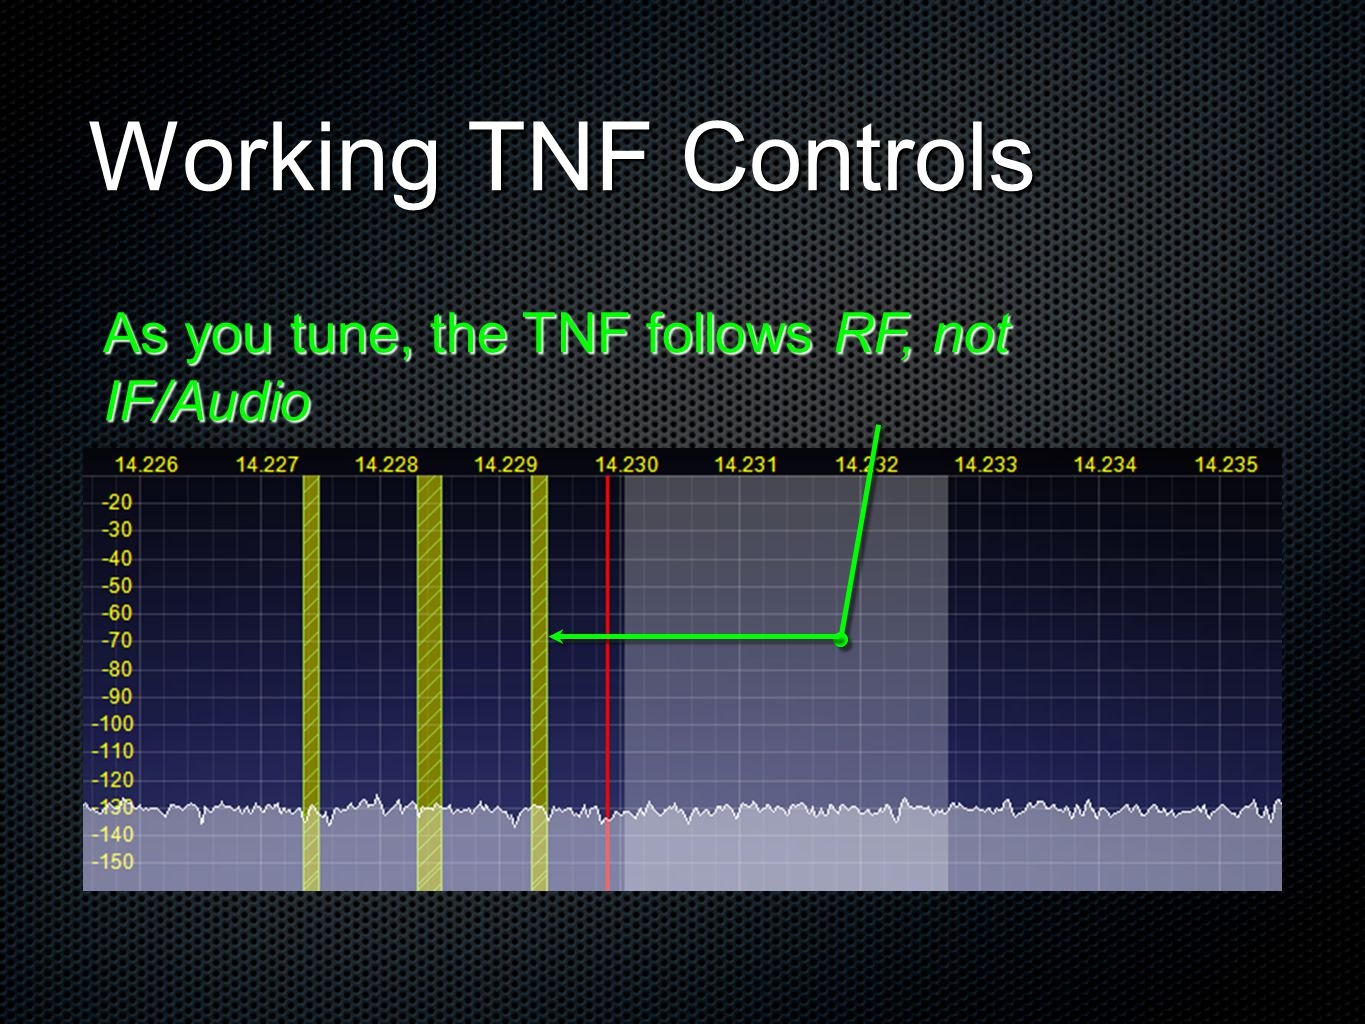 Working TNF Controls As you tune, the TNF follows RF, not IF/Audio